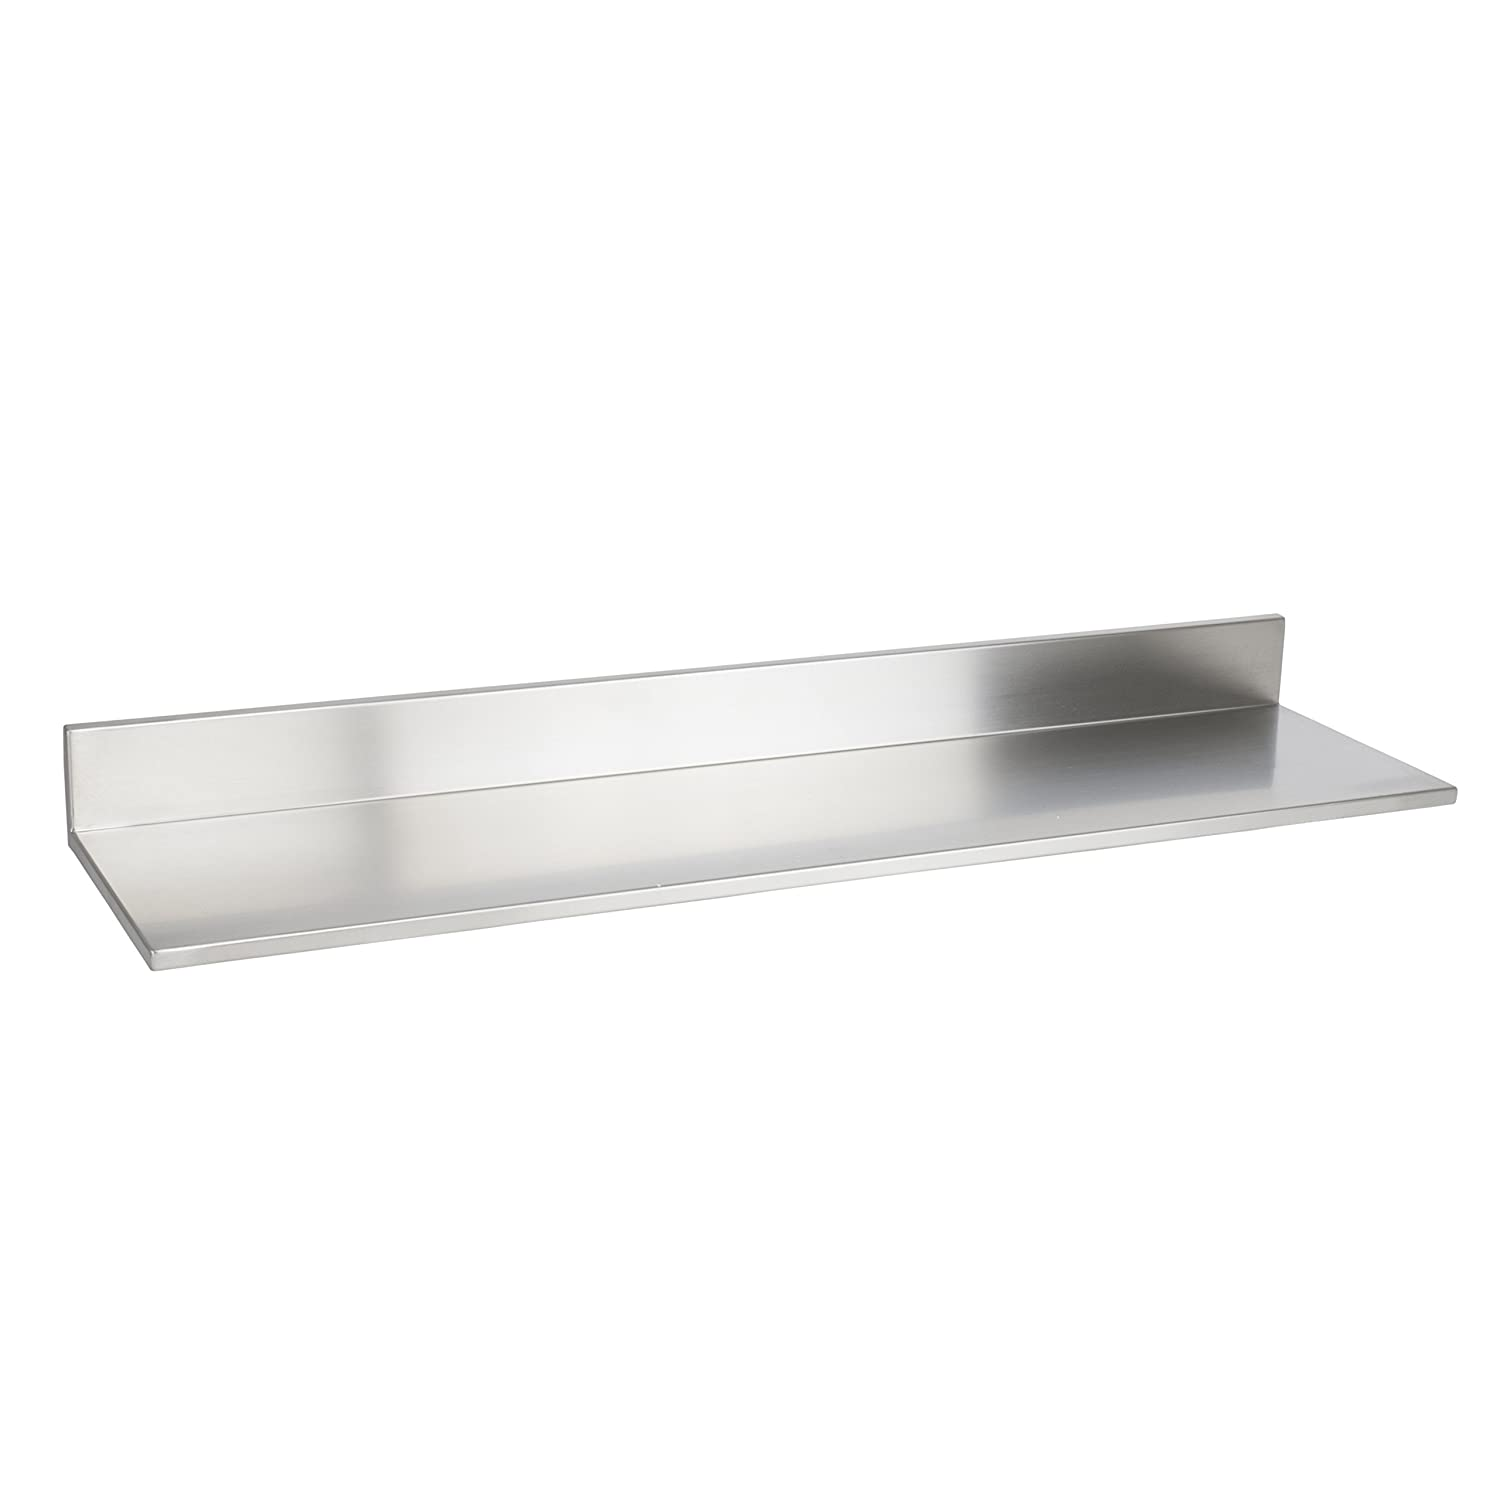 Durable Stainless-Steel Wall Mountable 30.5 Inch Kitchen Shelf for Restaurants Businesses and Eateries